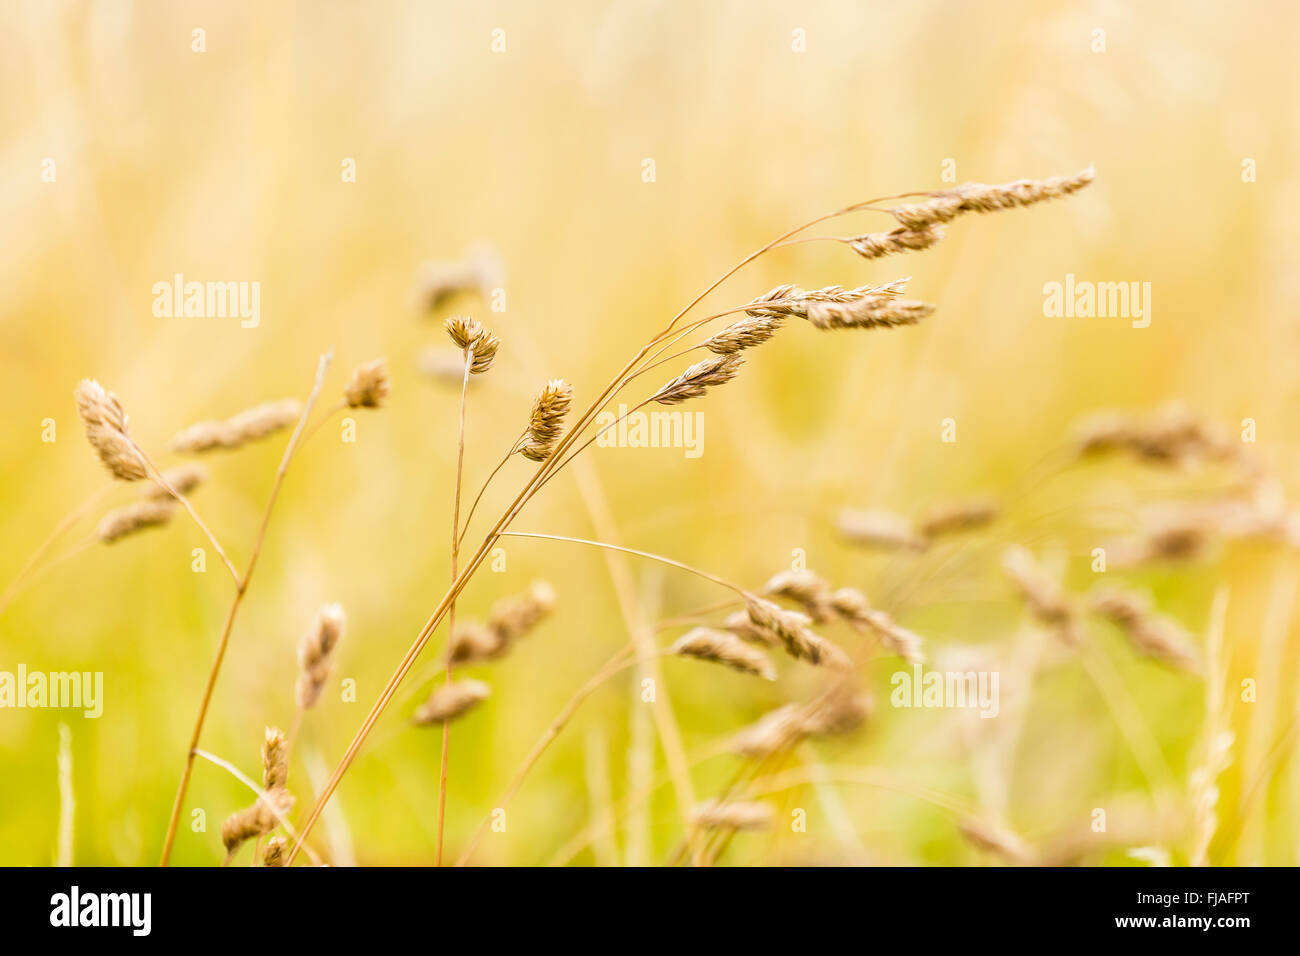 Grass seed heads of Cocksfoot - Dactylis glomerata. - Stock Image